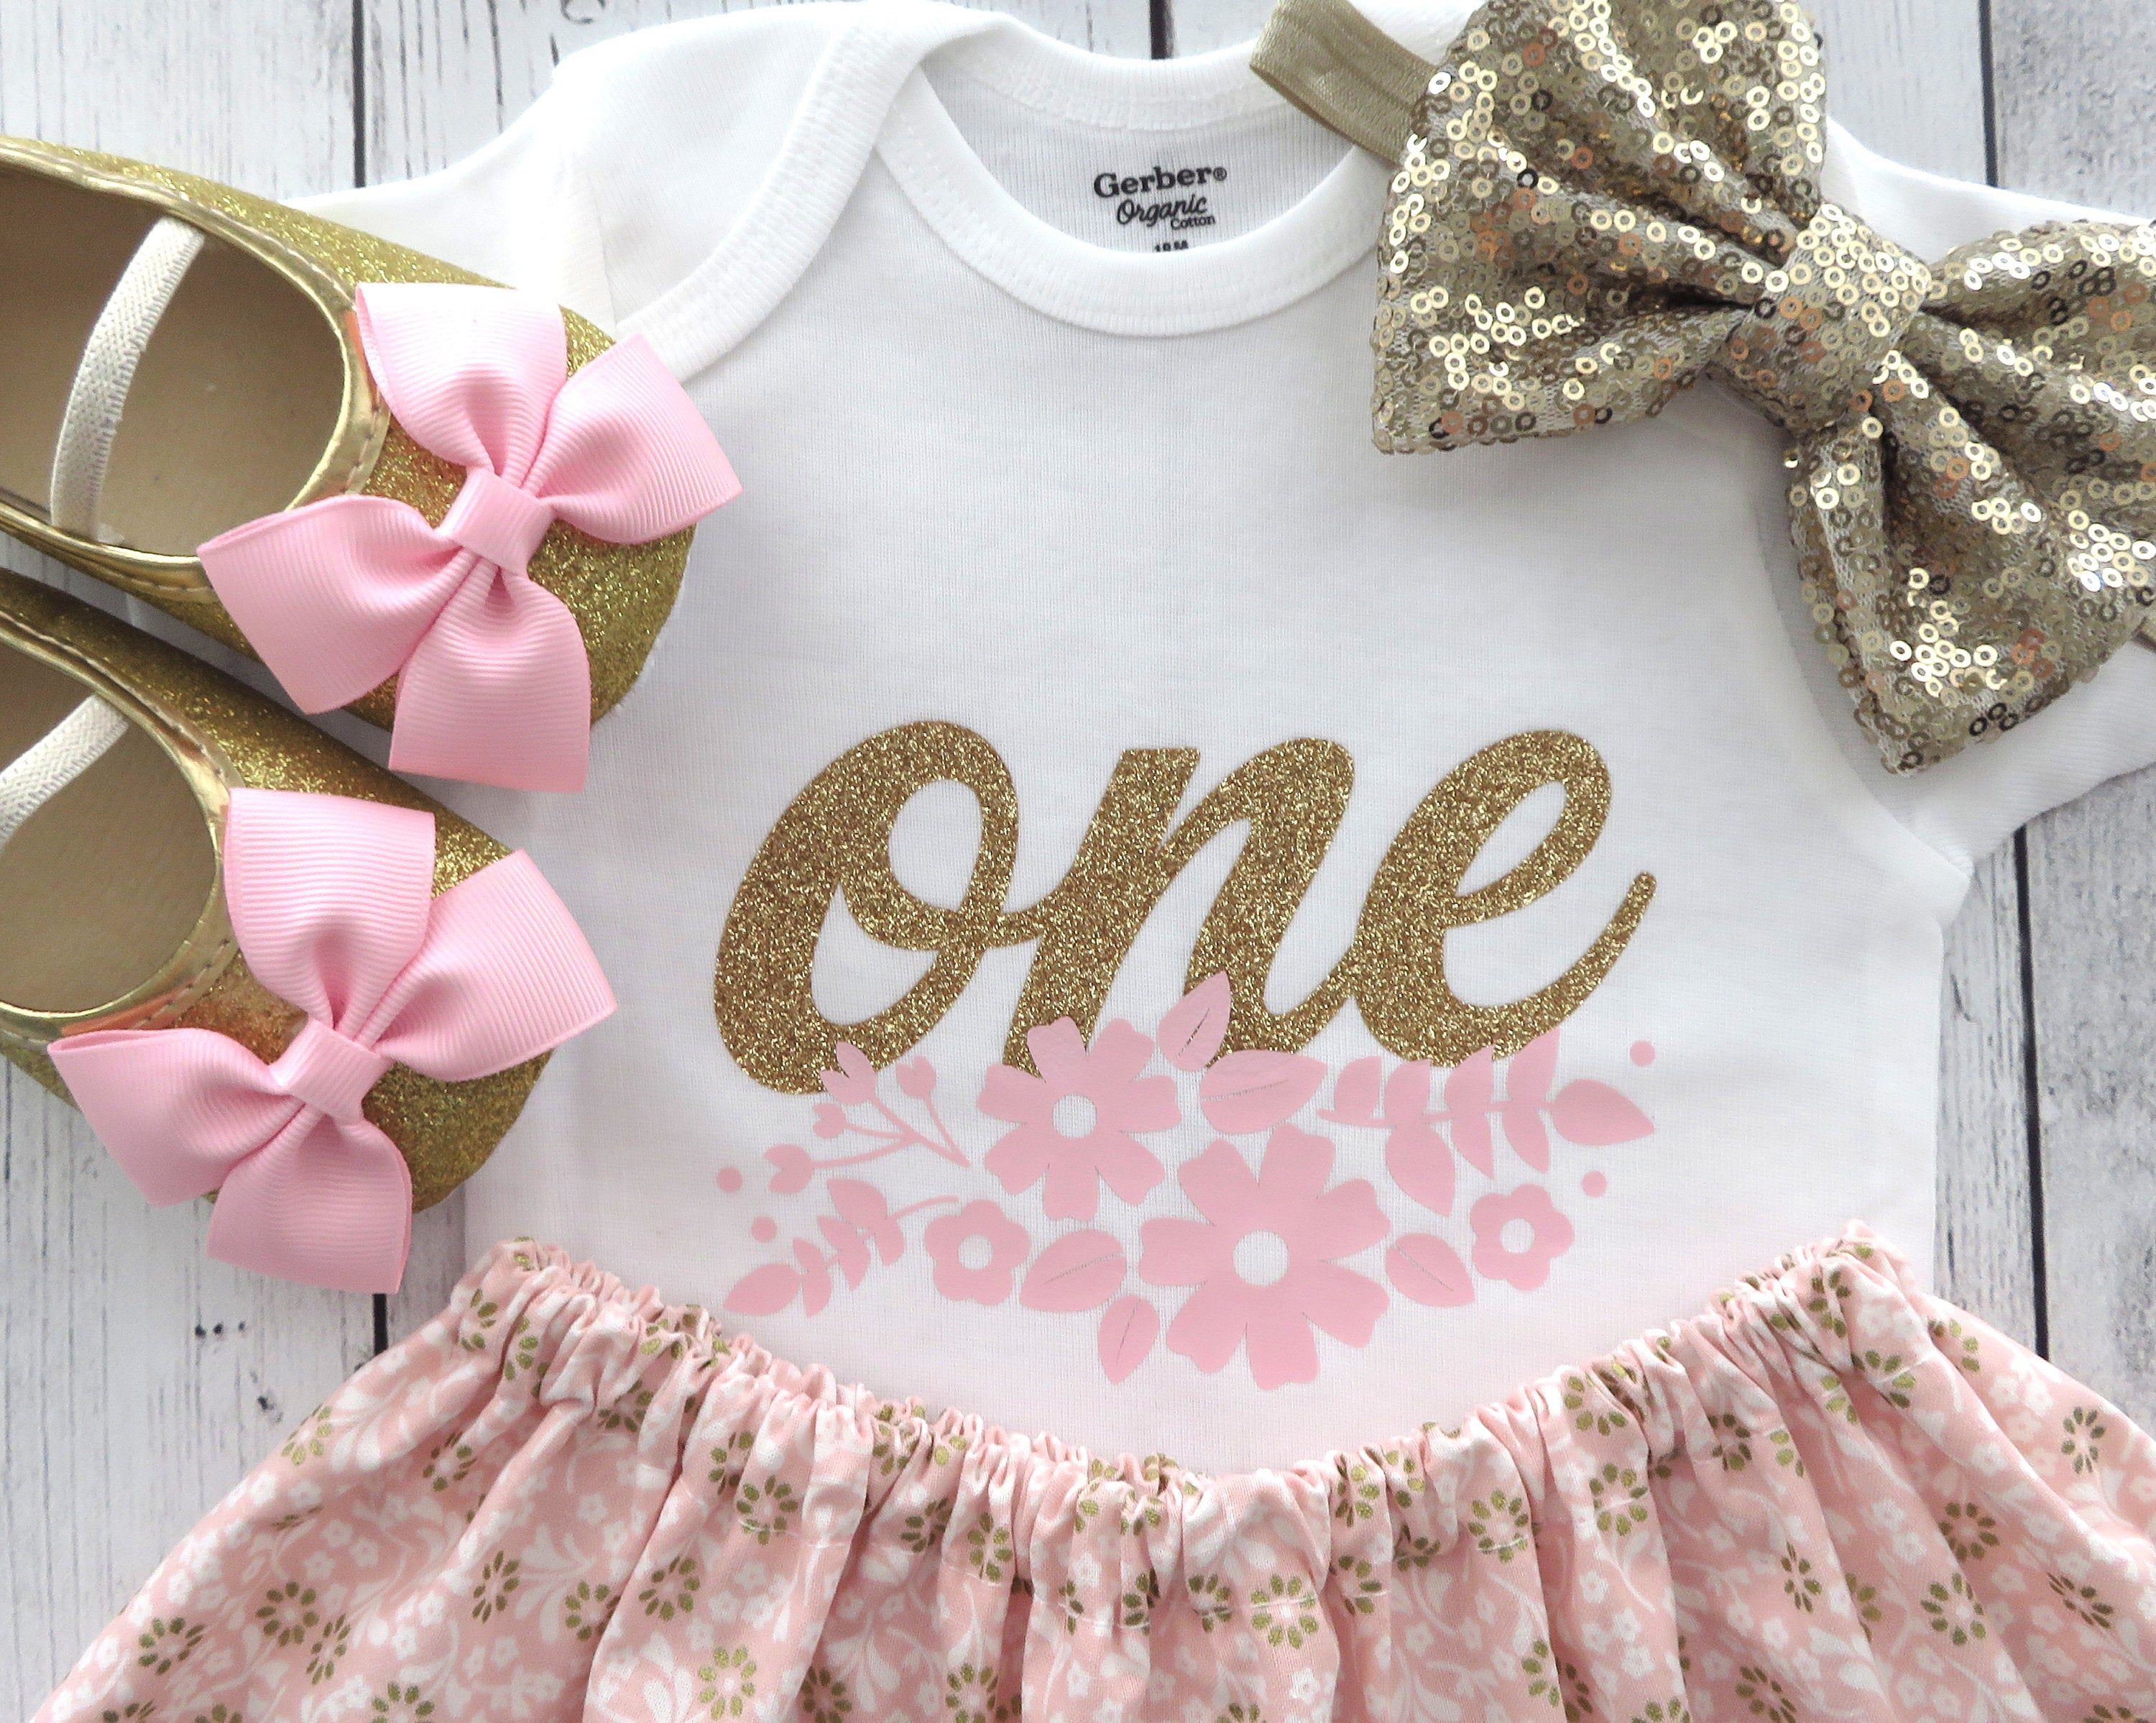 Floral First Birthday Outfit in pink and gold - girl 1st birthday outfit, floral 1st birthday outfit, pink gold birthday outfit, 1st bday